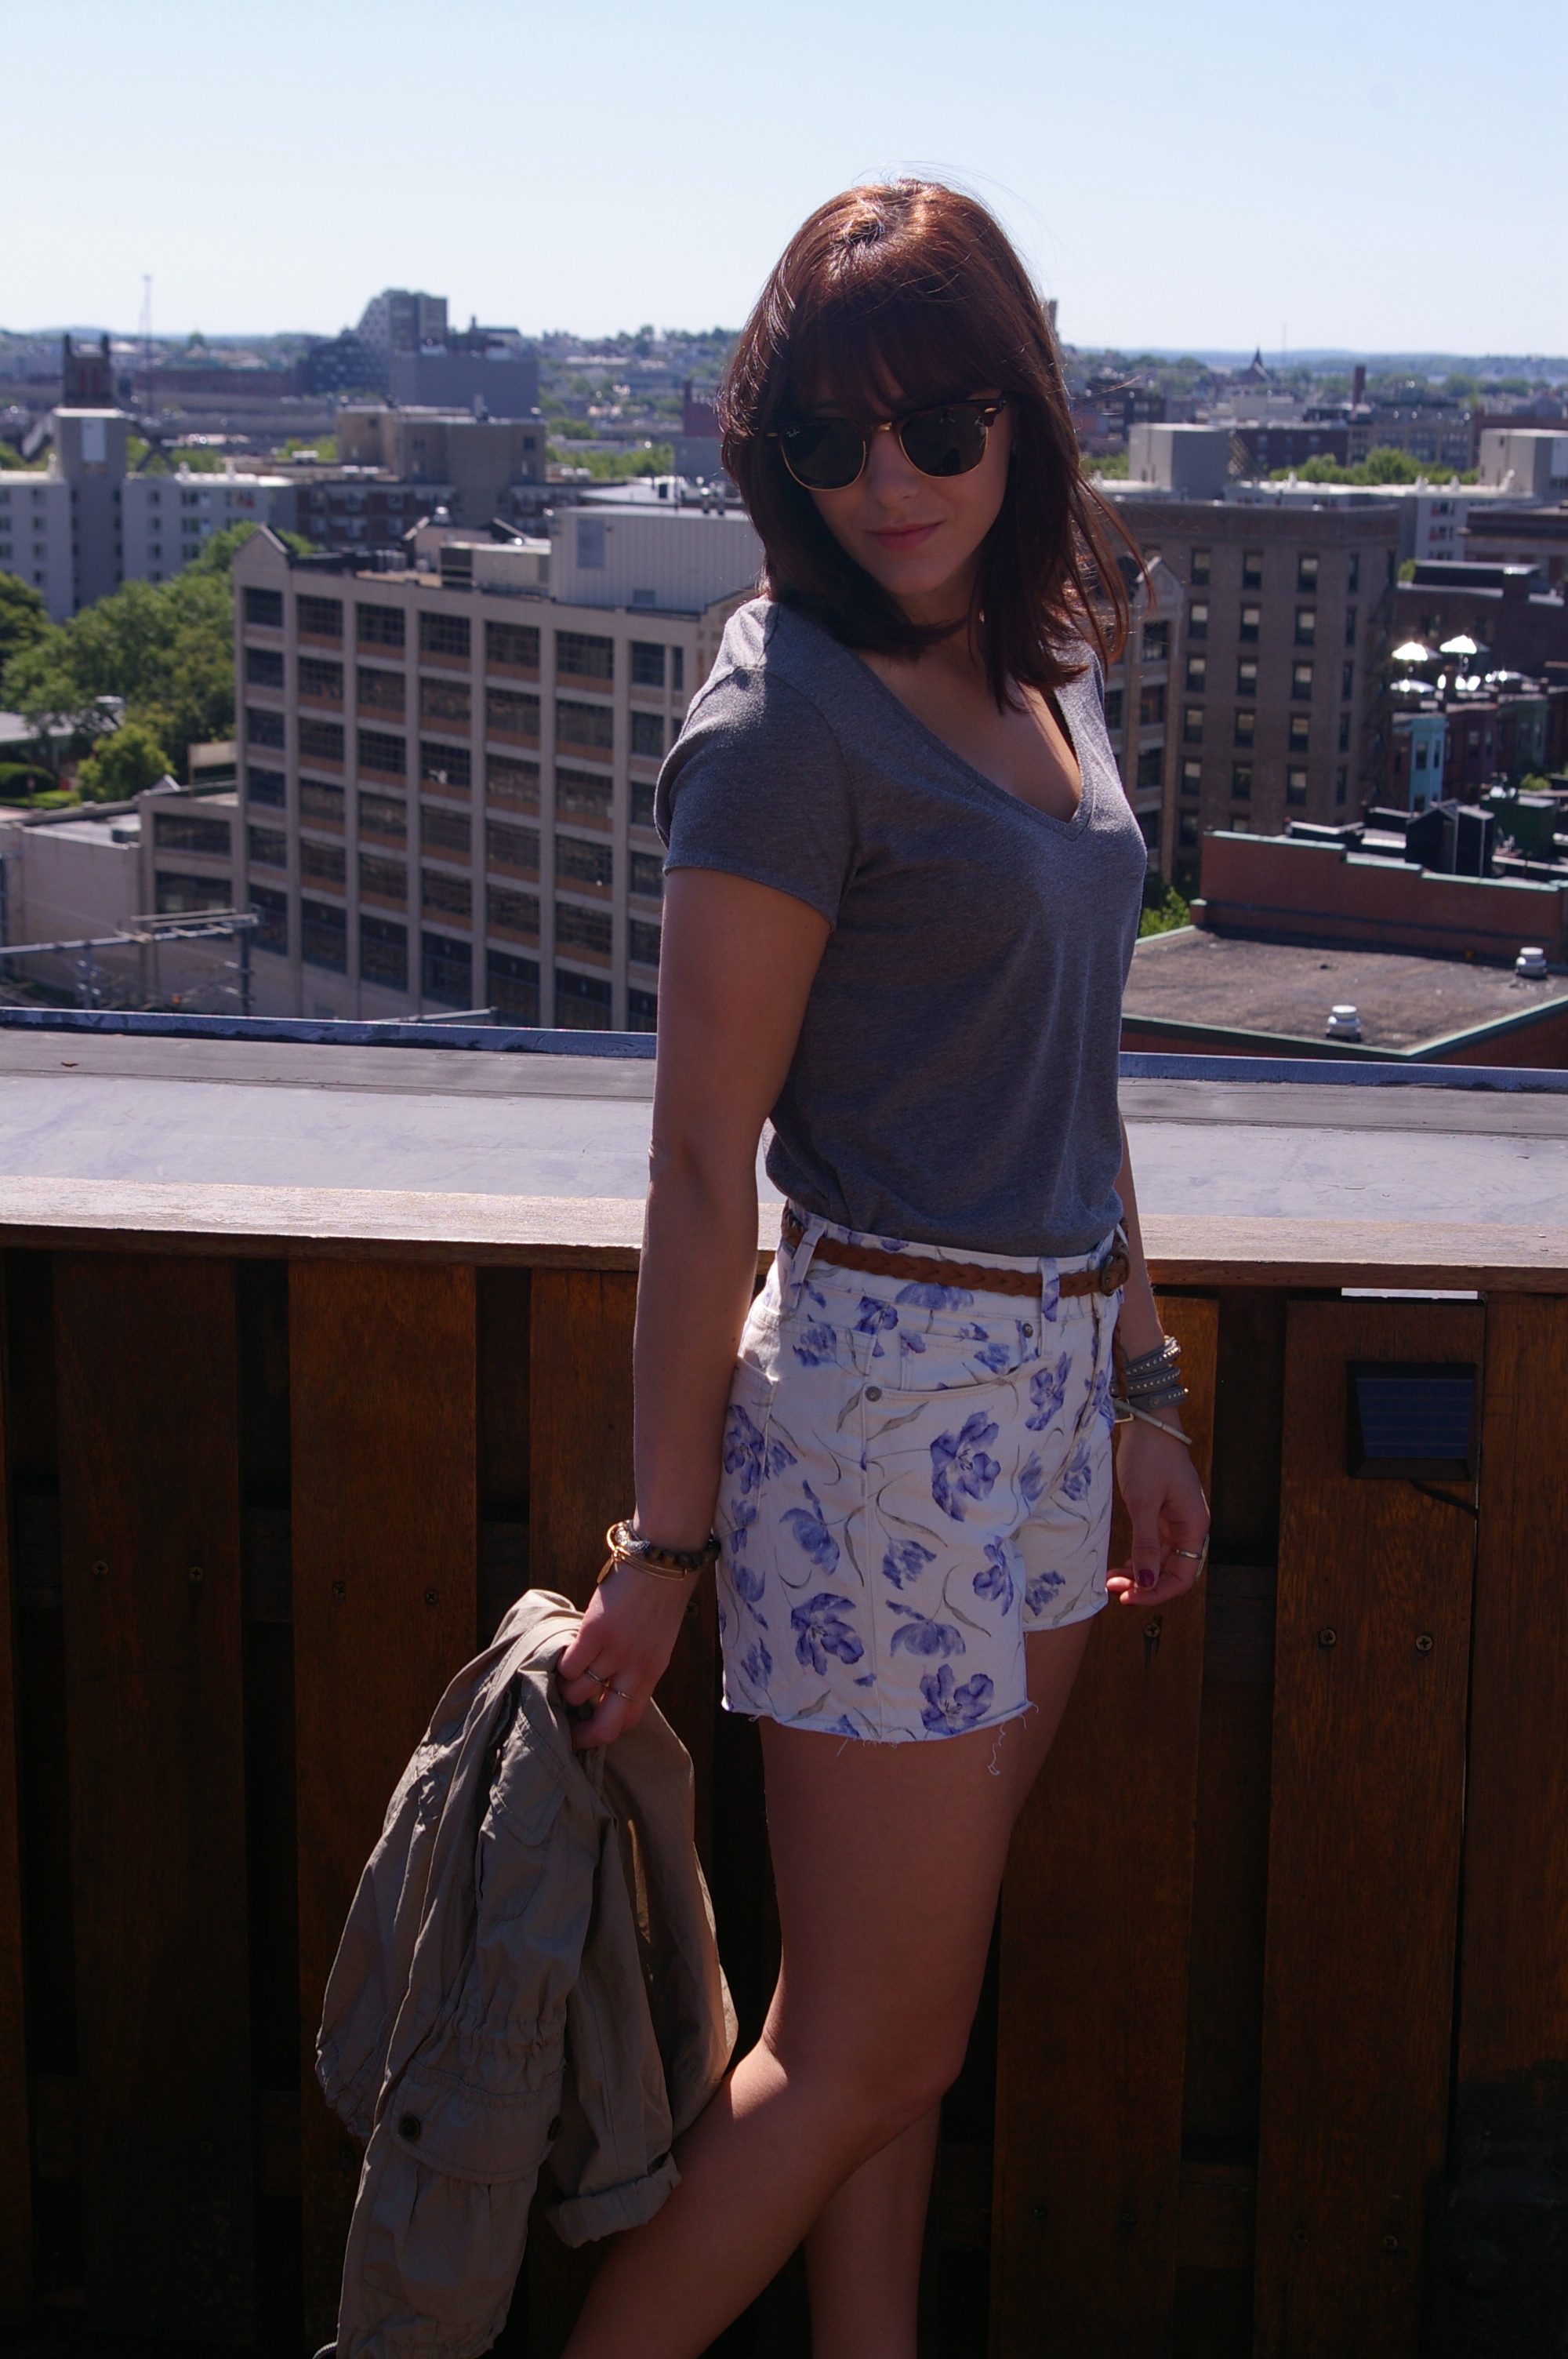 Ray-Ban sunnies, Summer fashion, Paige Denim shorts